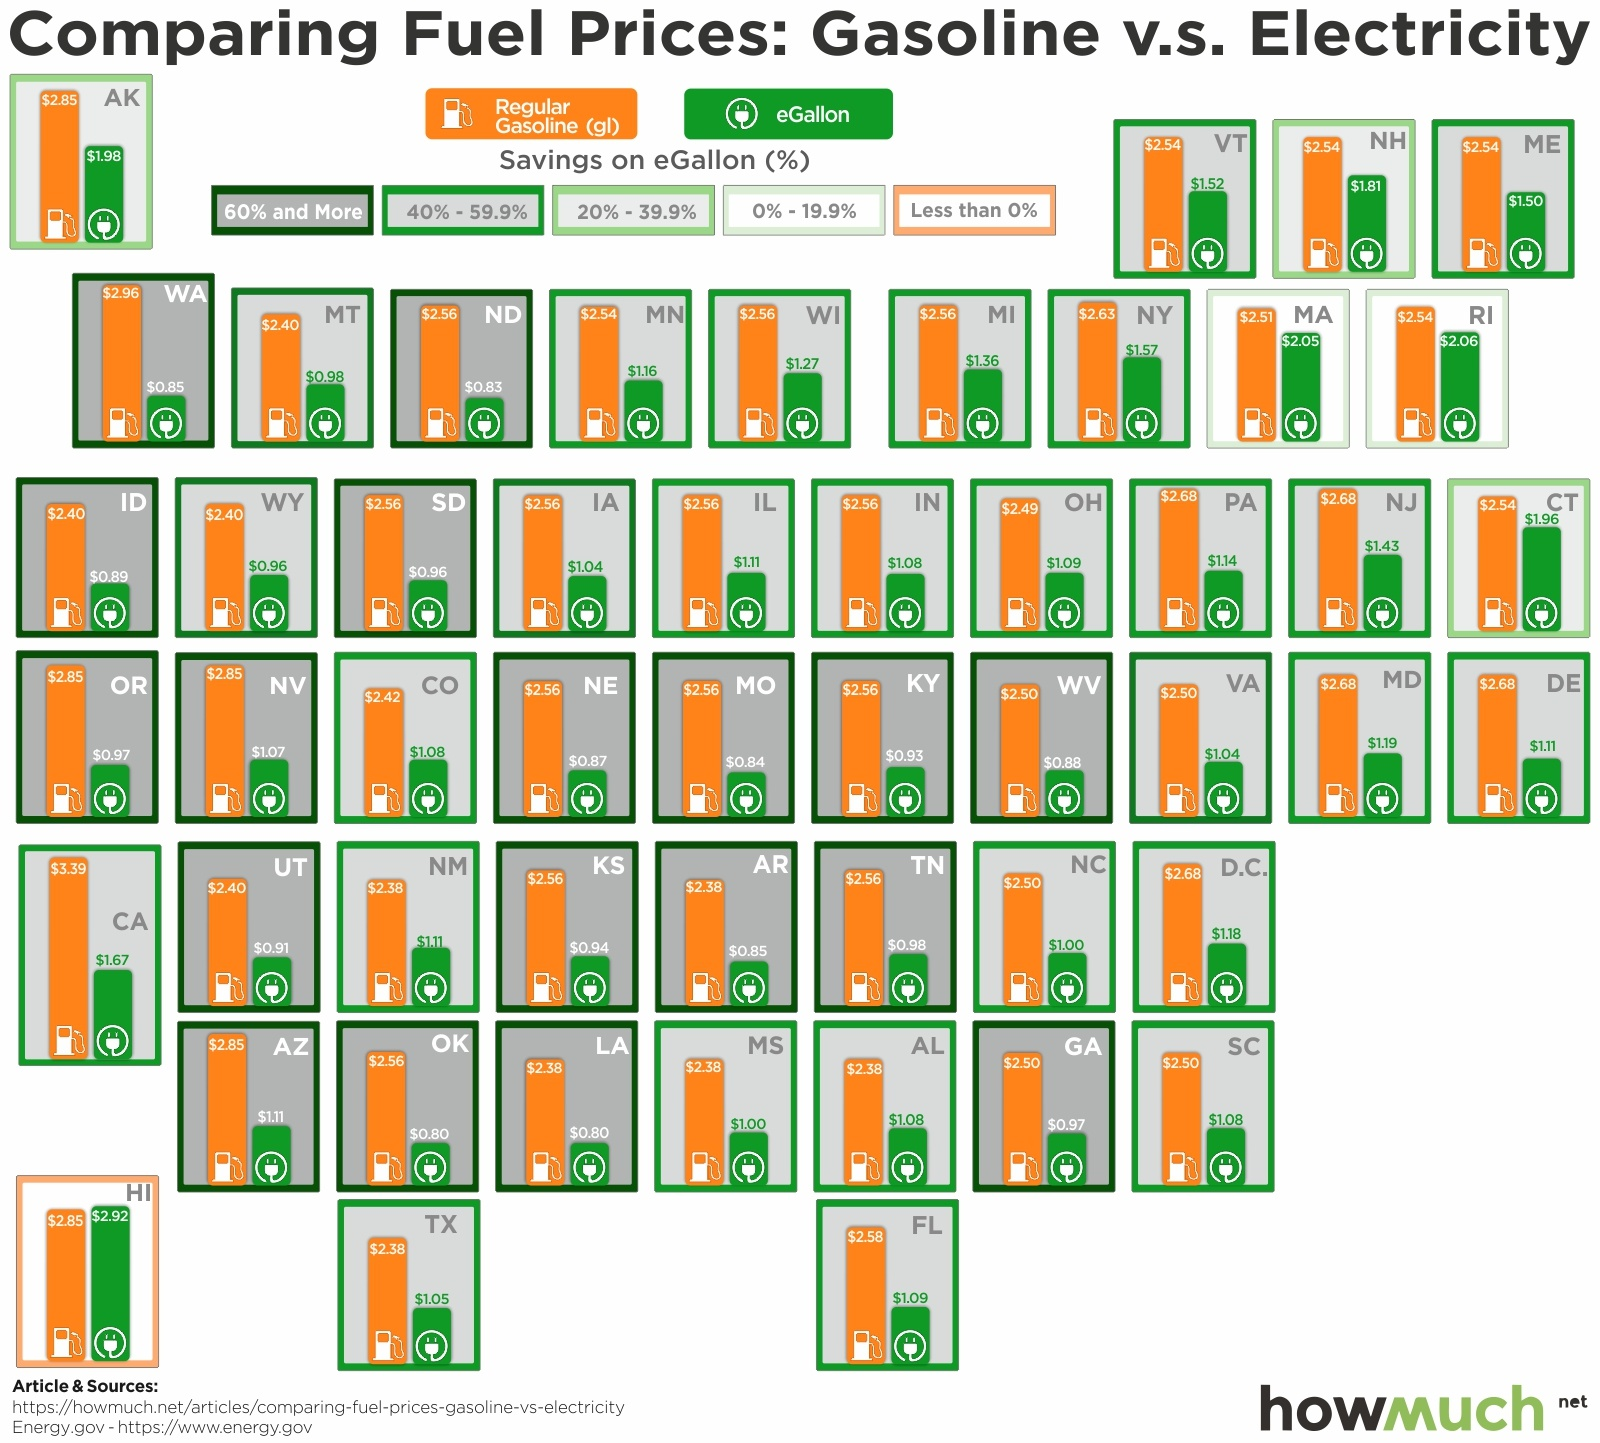 Top 10 States With The Highest Cost Savings From Choosing Electricity Over Gasoline